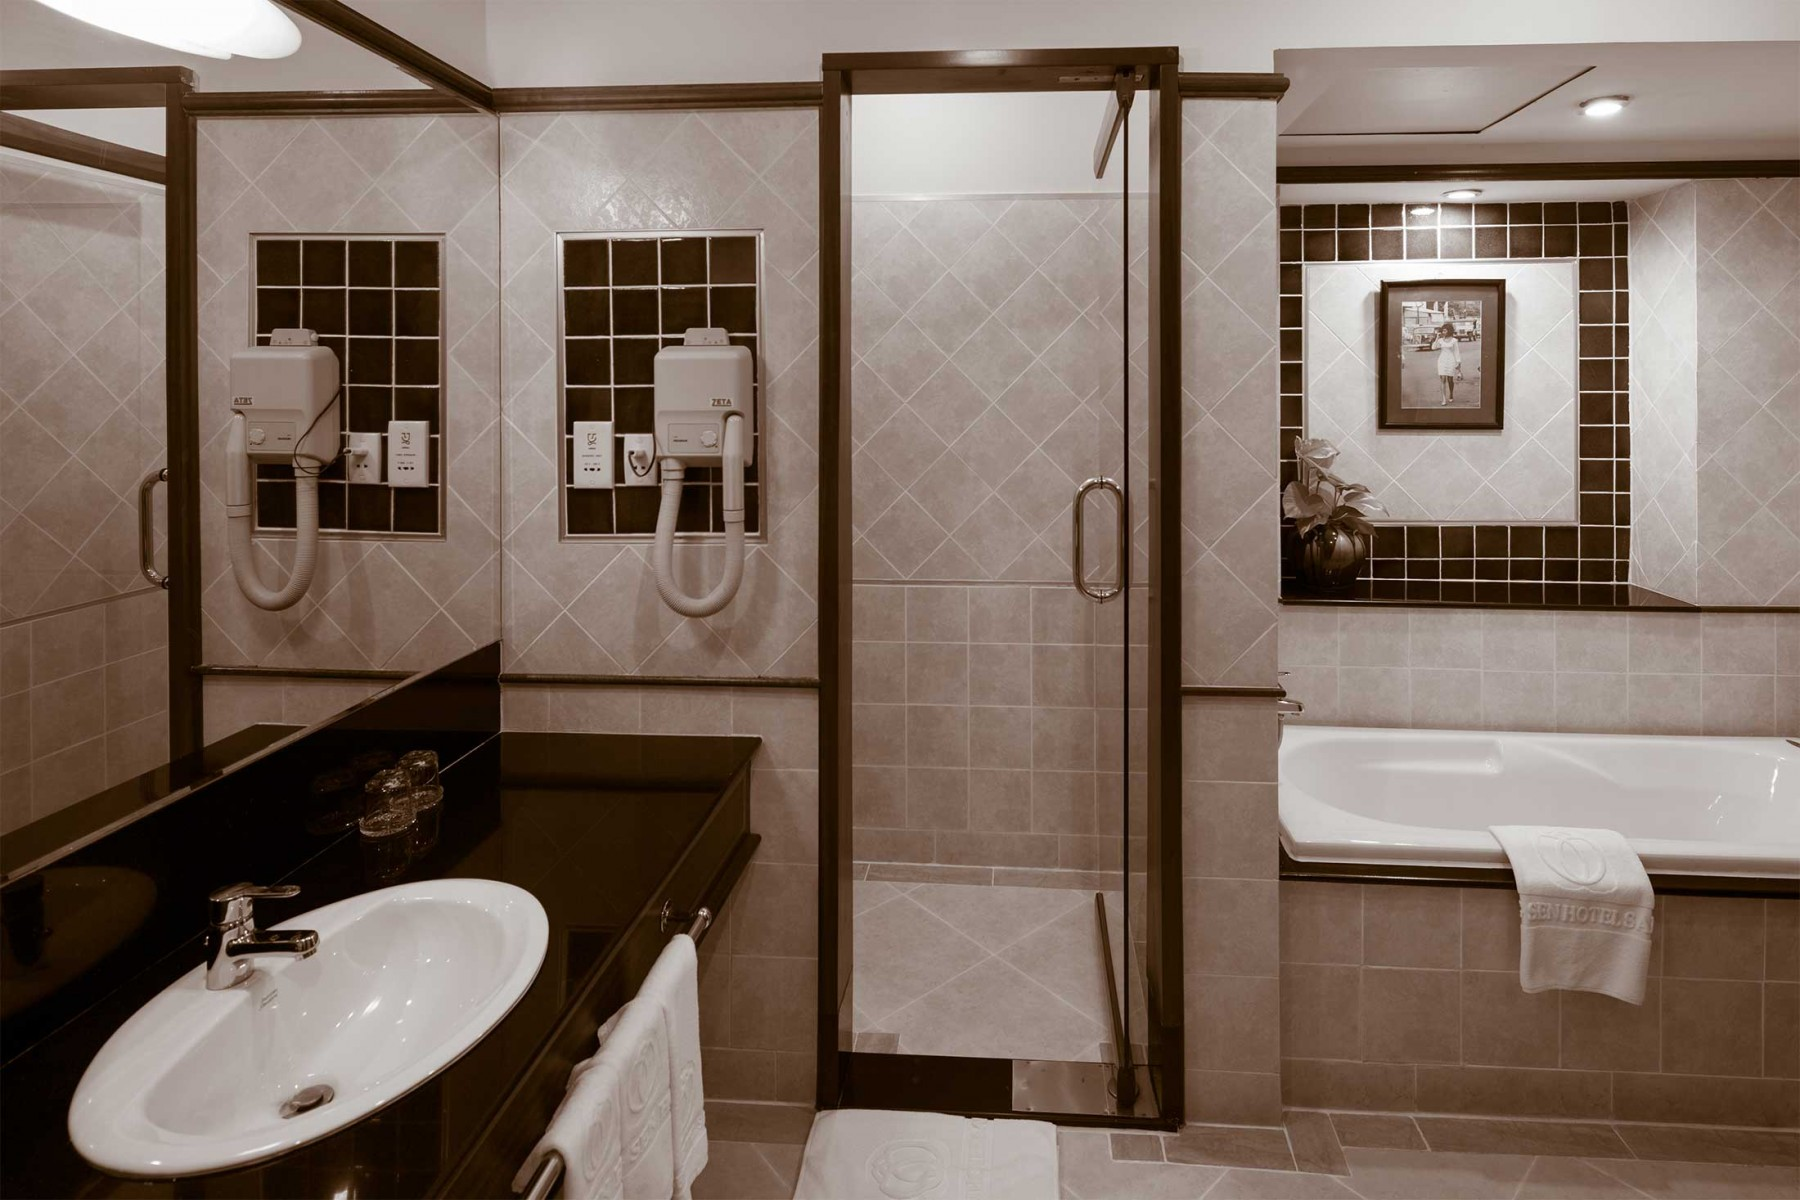 BongSen1_Sepia_BED-Facilities-(32-of-36)